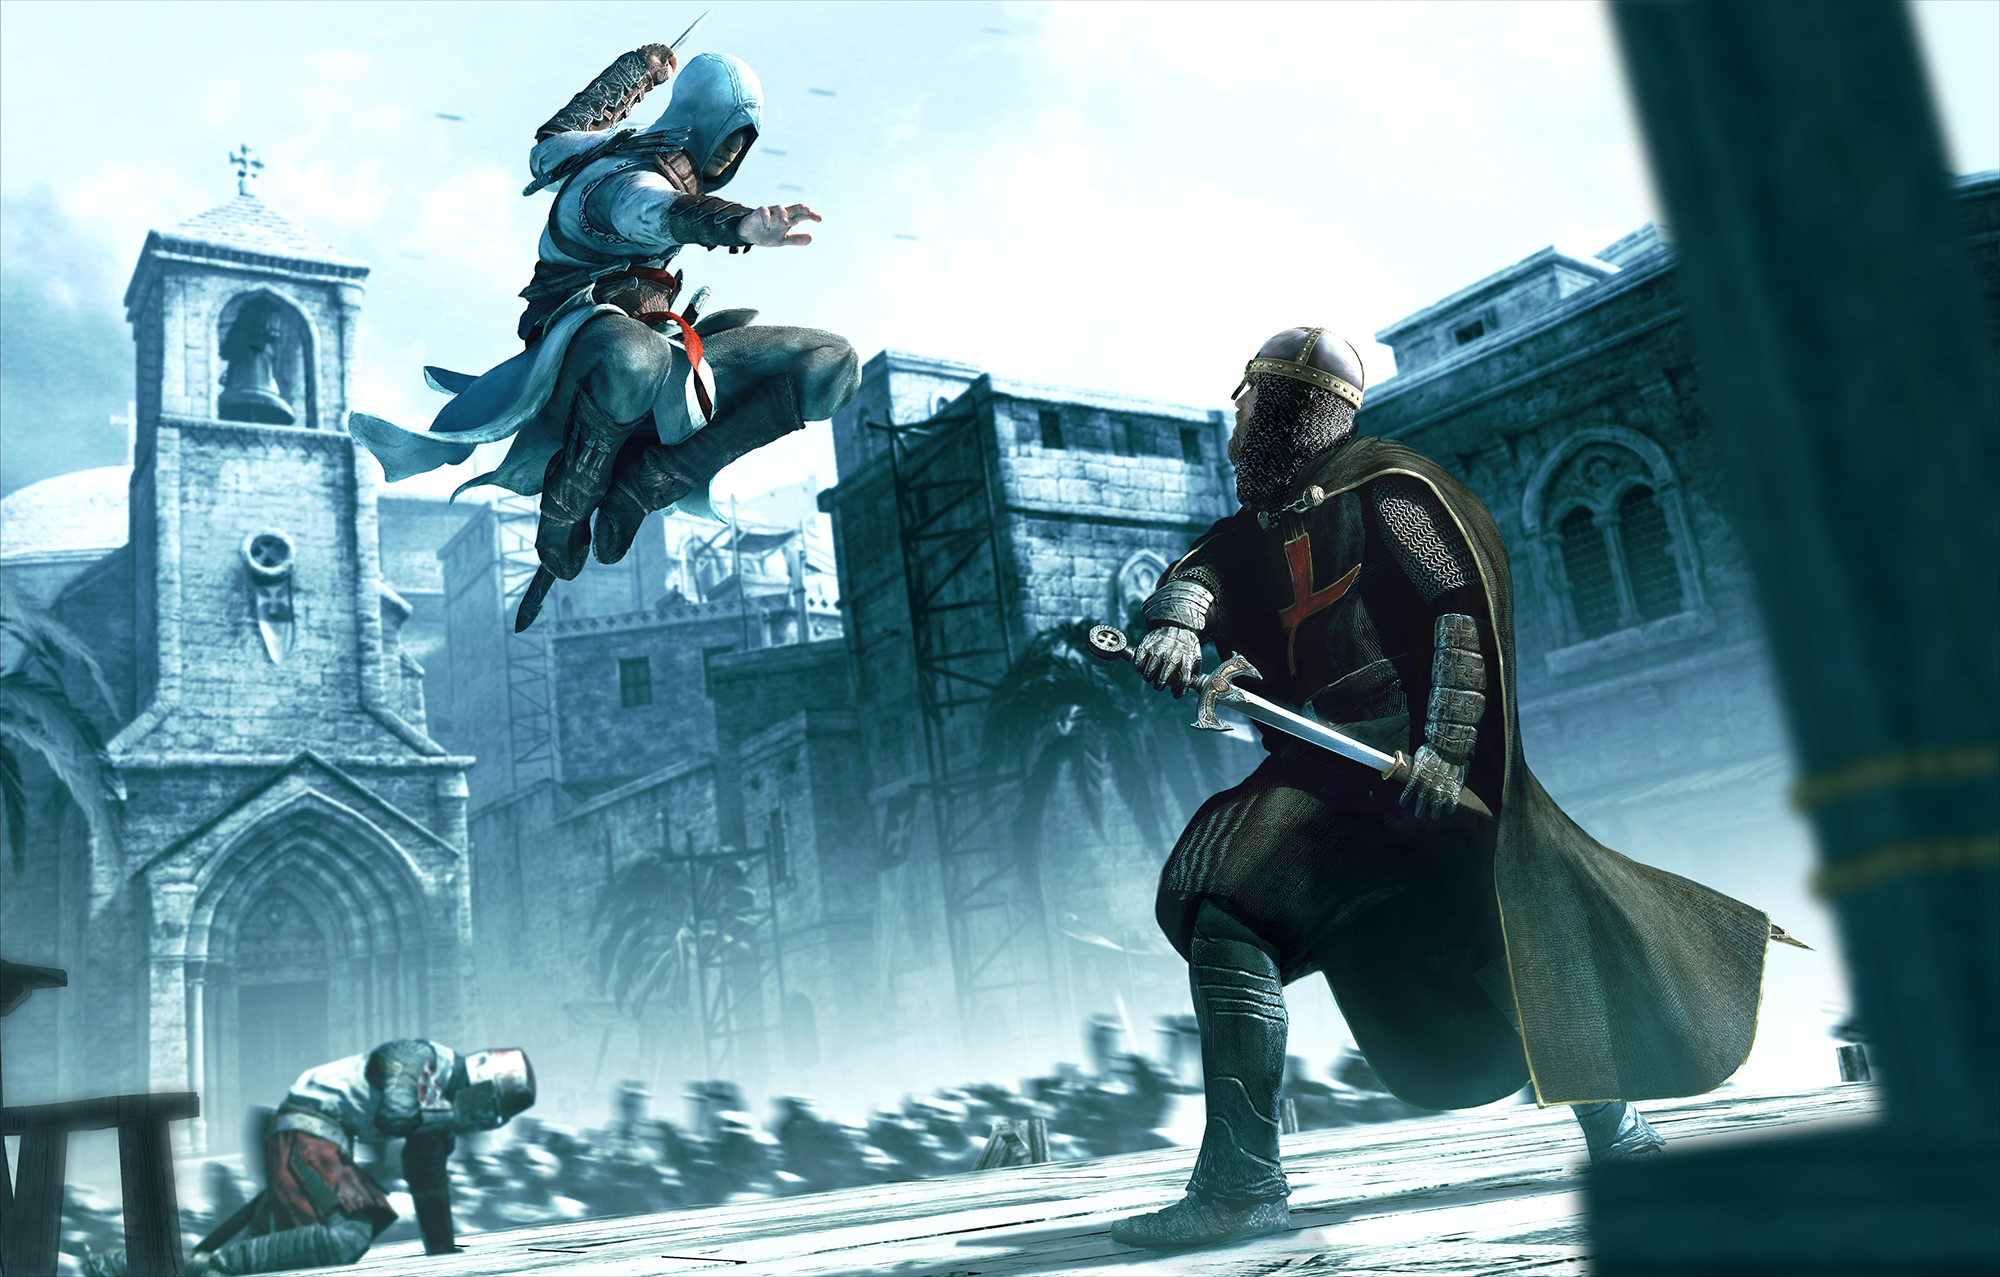 Will The First Assassin's Creed Be Remastered For Xbox Series X & PS5?